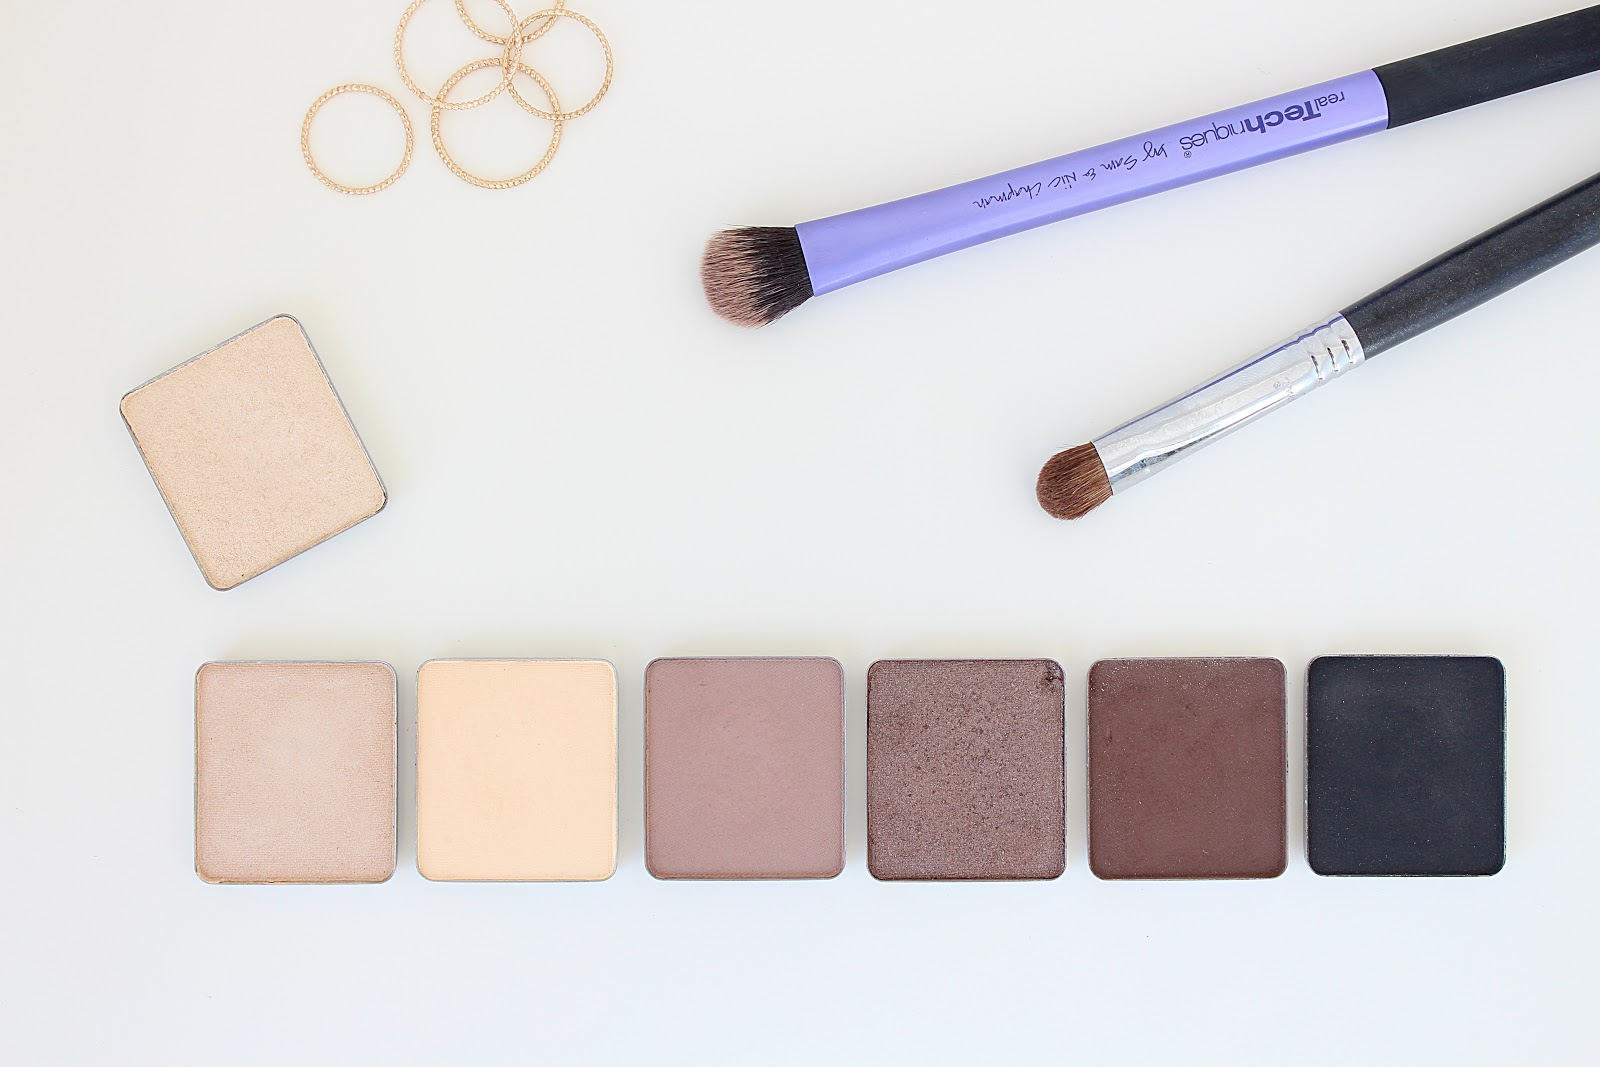 Inglot Neutral Smokey Eye Palette Swatches and Review